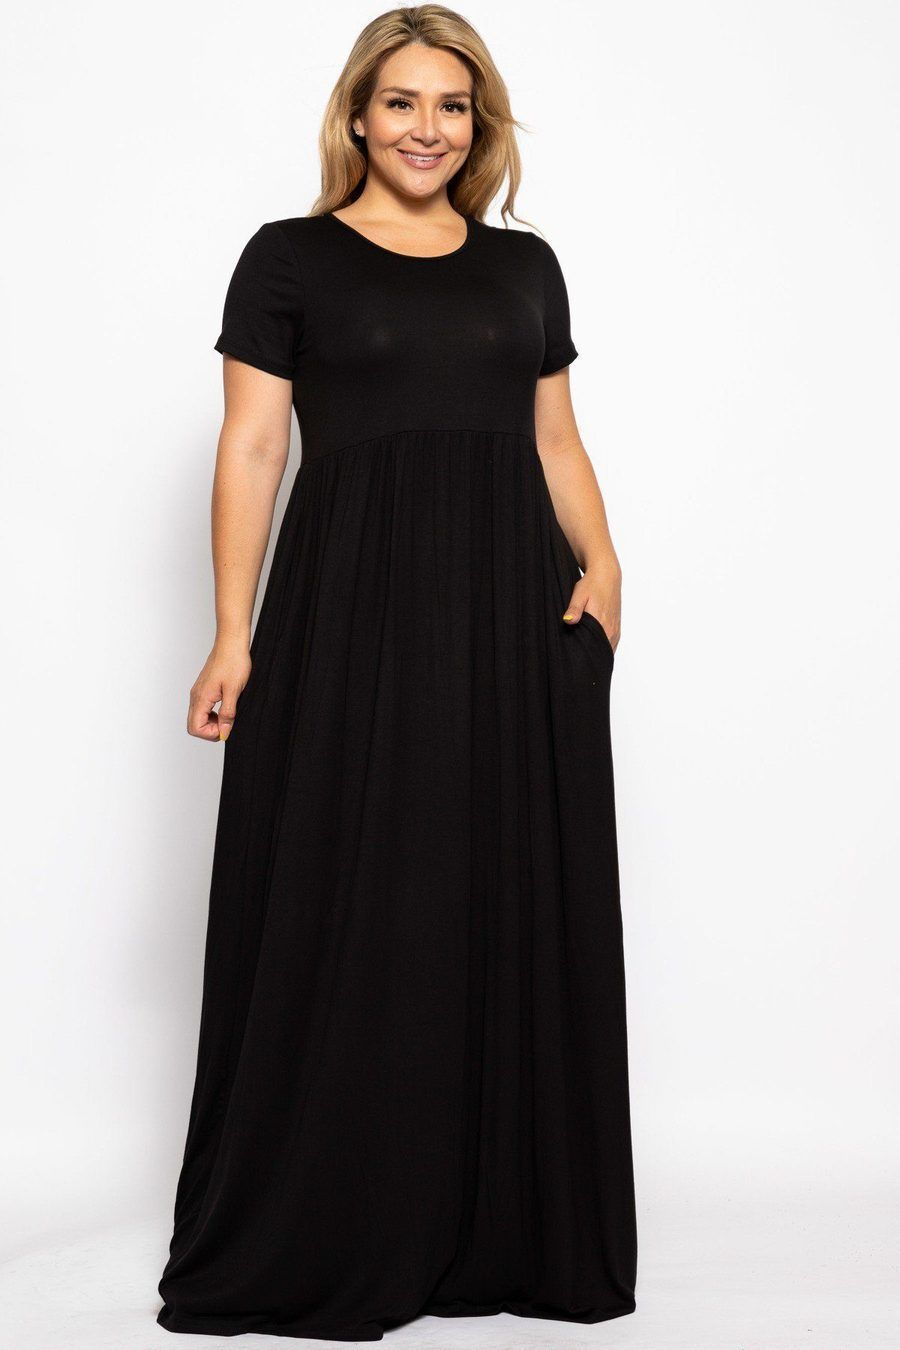 Do You Love Long Comfortable Dresses This Is The One For You Plus Size Casual Dresses Ideas Maxi Dress Short Sleeve Maxi Dresses Plus Size Maxi Dresses [ 1350 x 900 Pixel ]